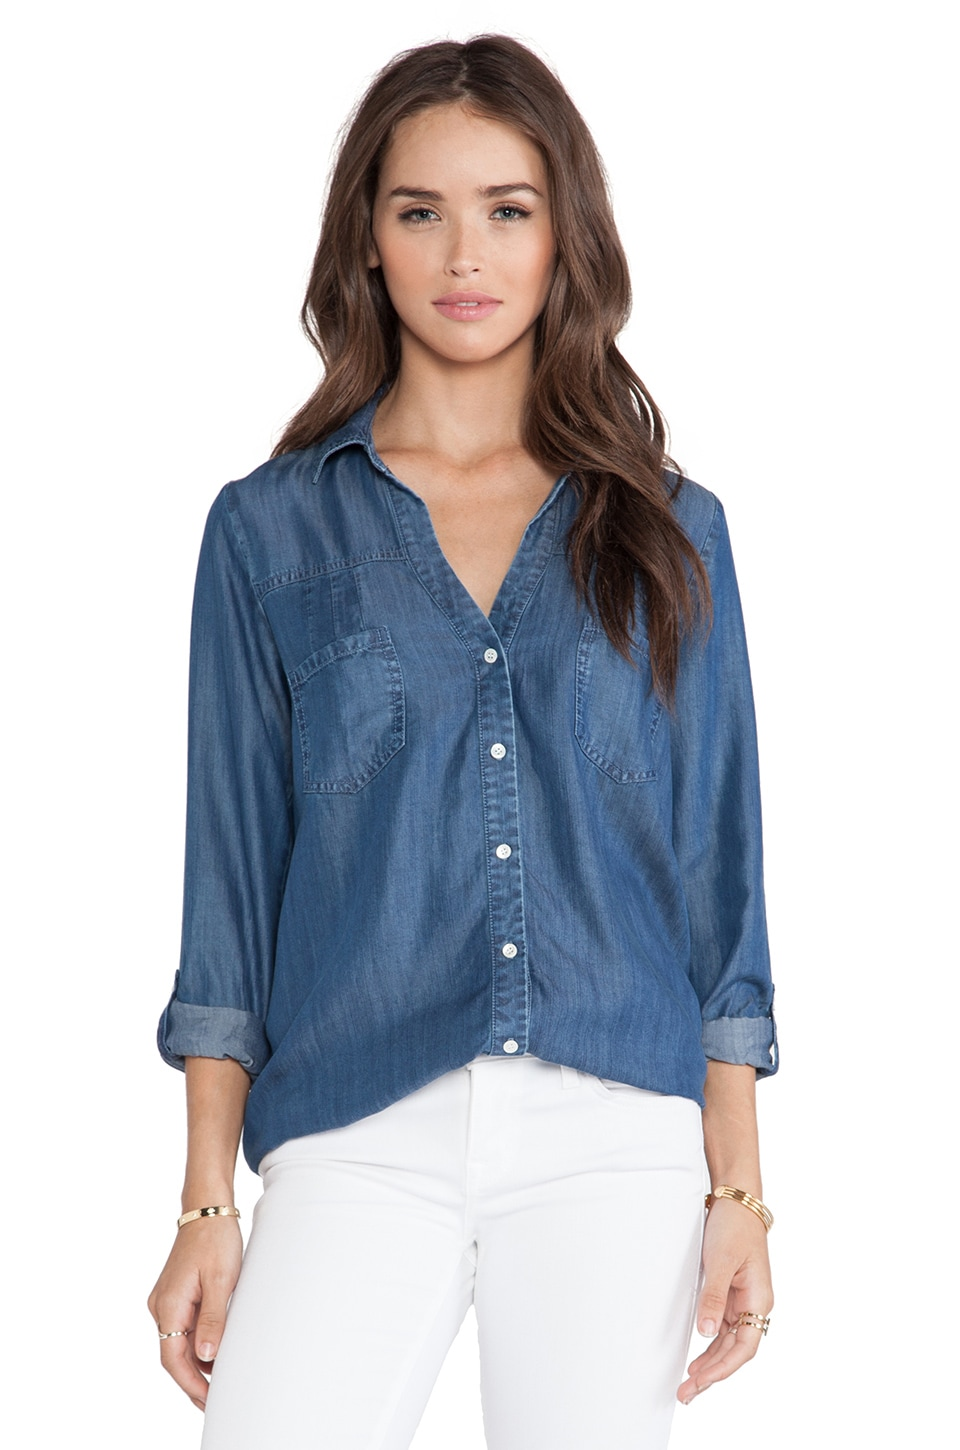 Soft Joie Brady Top in Medium Indigo